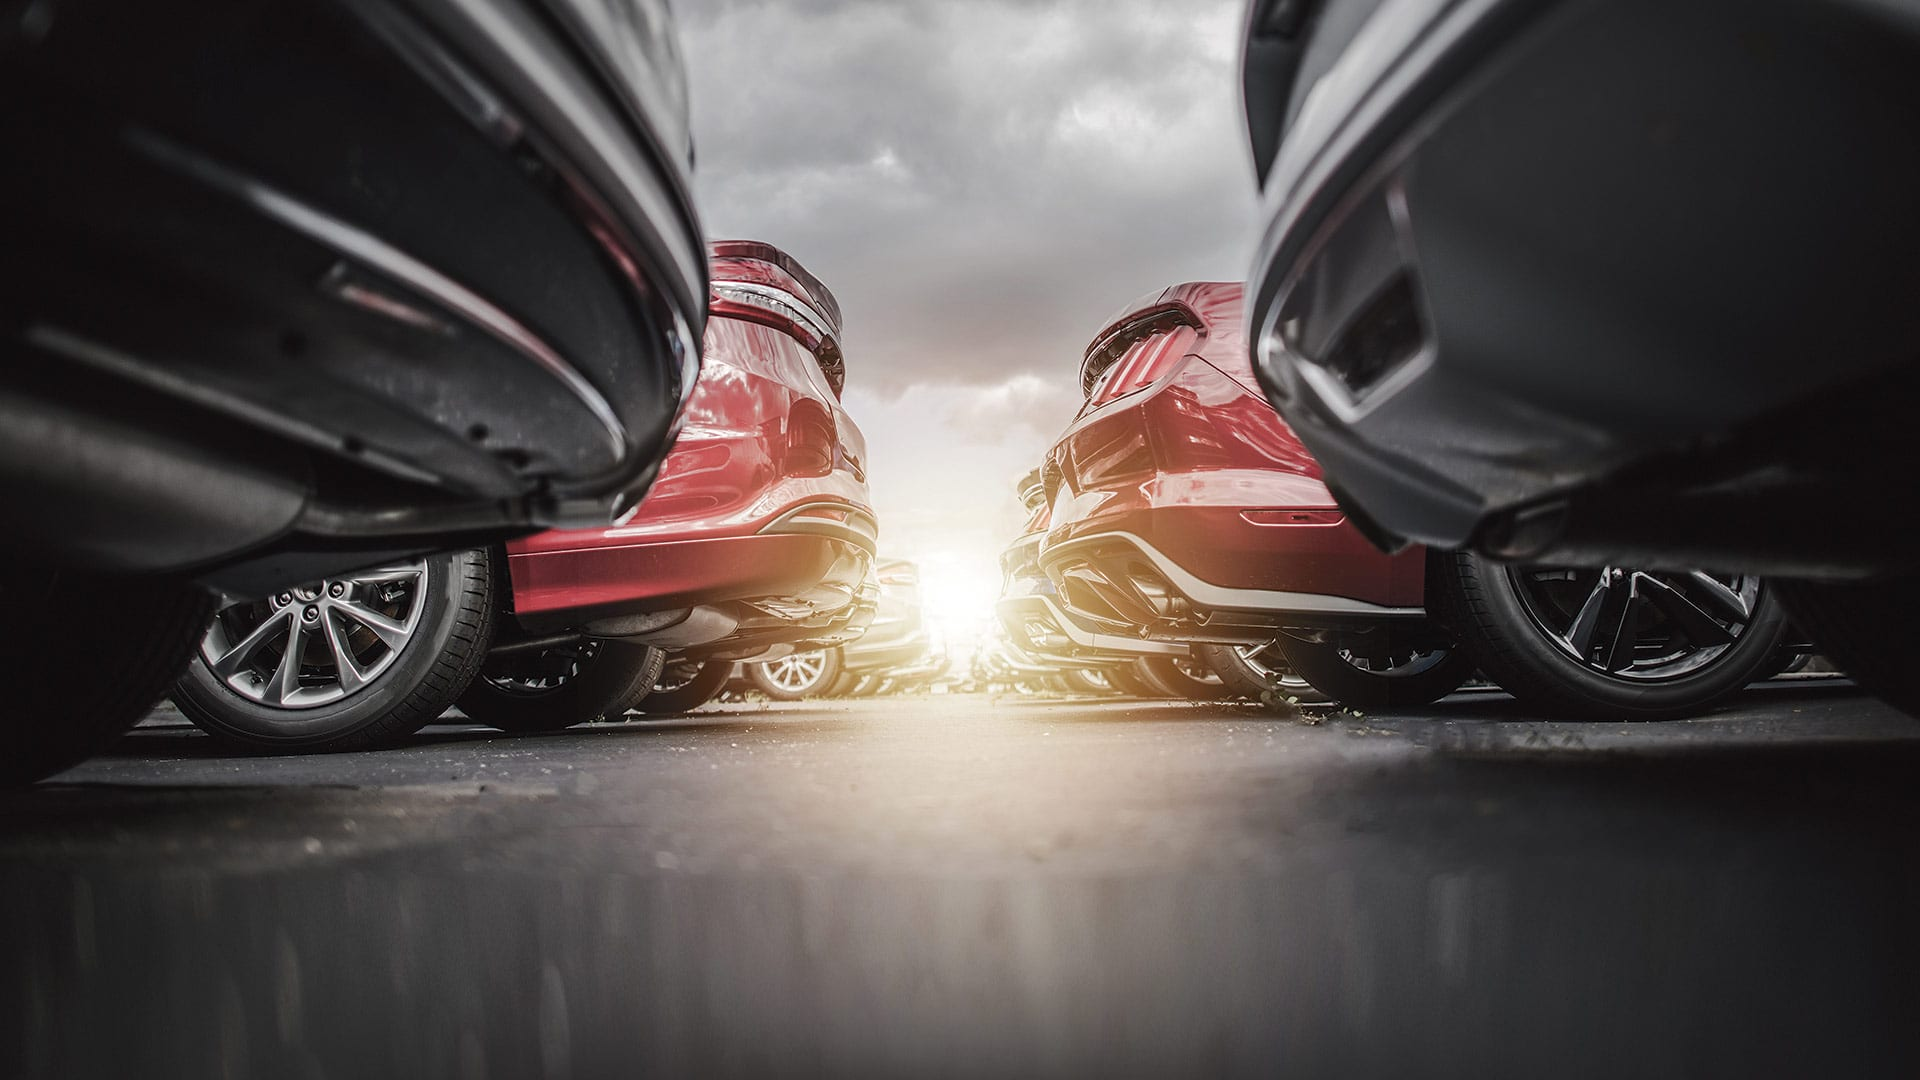 As The 2019 Models Continue To Roll Into Area Showrooms Auto Dealers Report That S Remain Brisk At Something Roximating Levels Of 2017